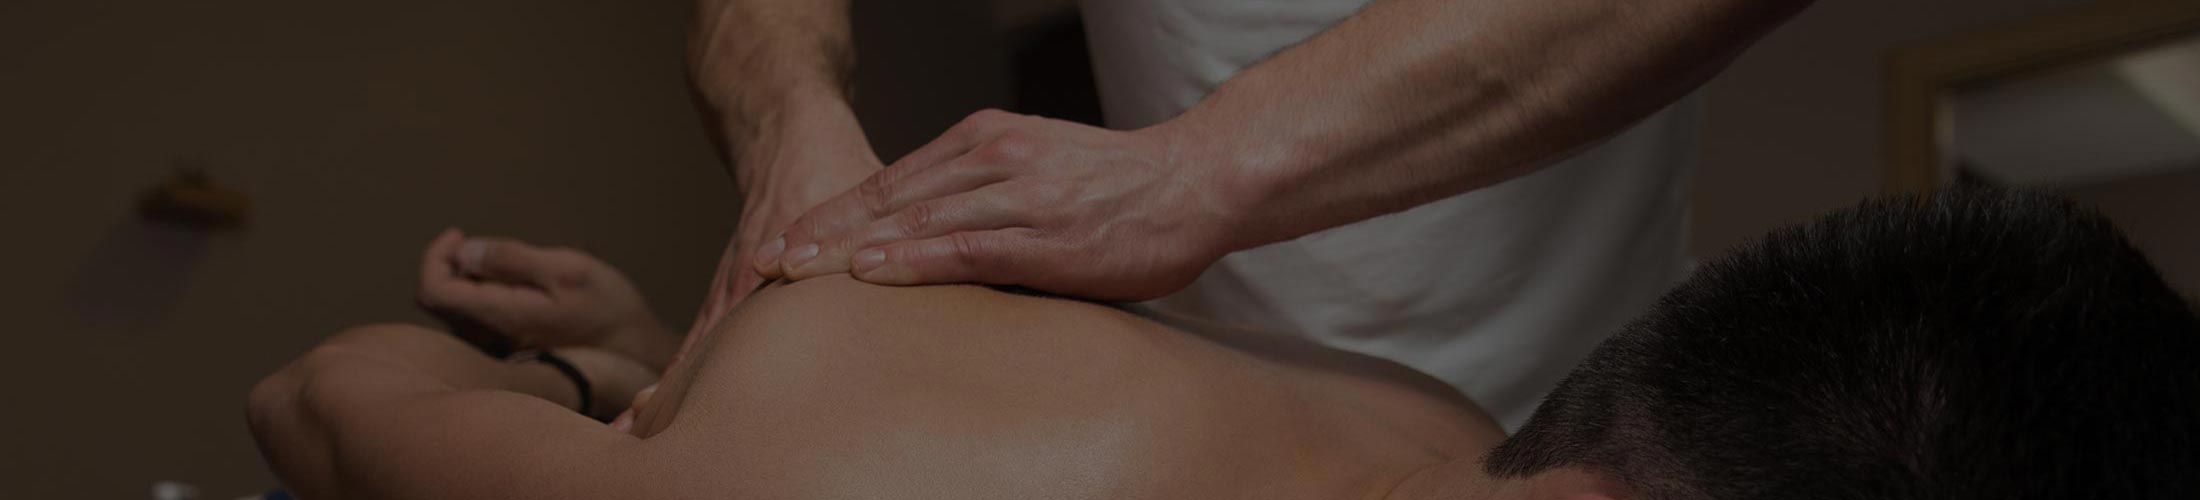 Massage Therapy Career Opportunities